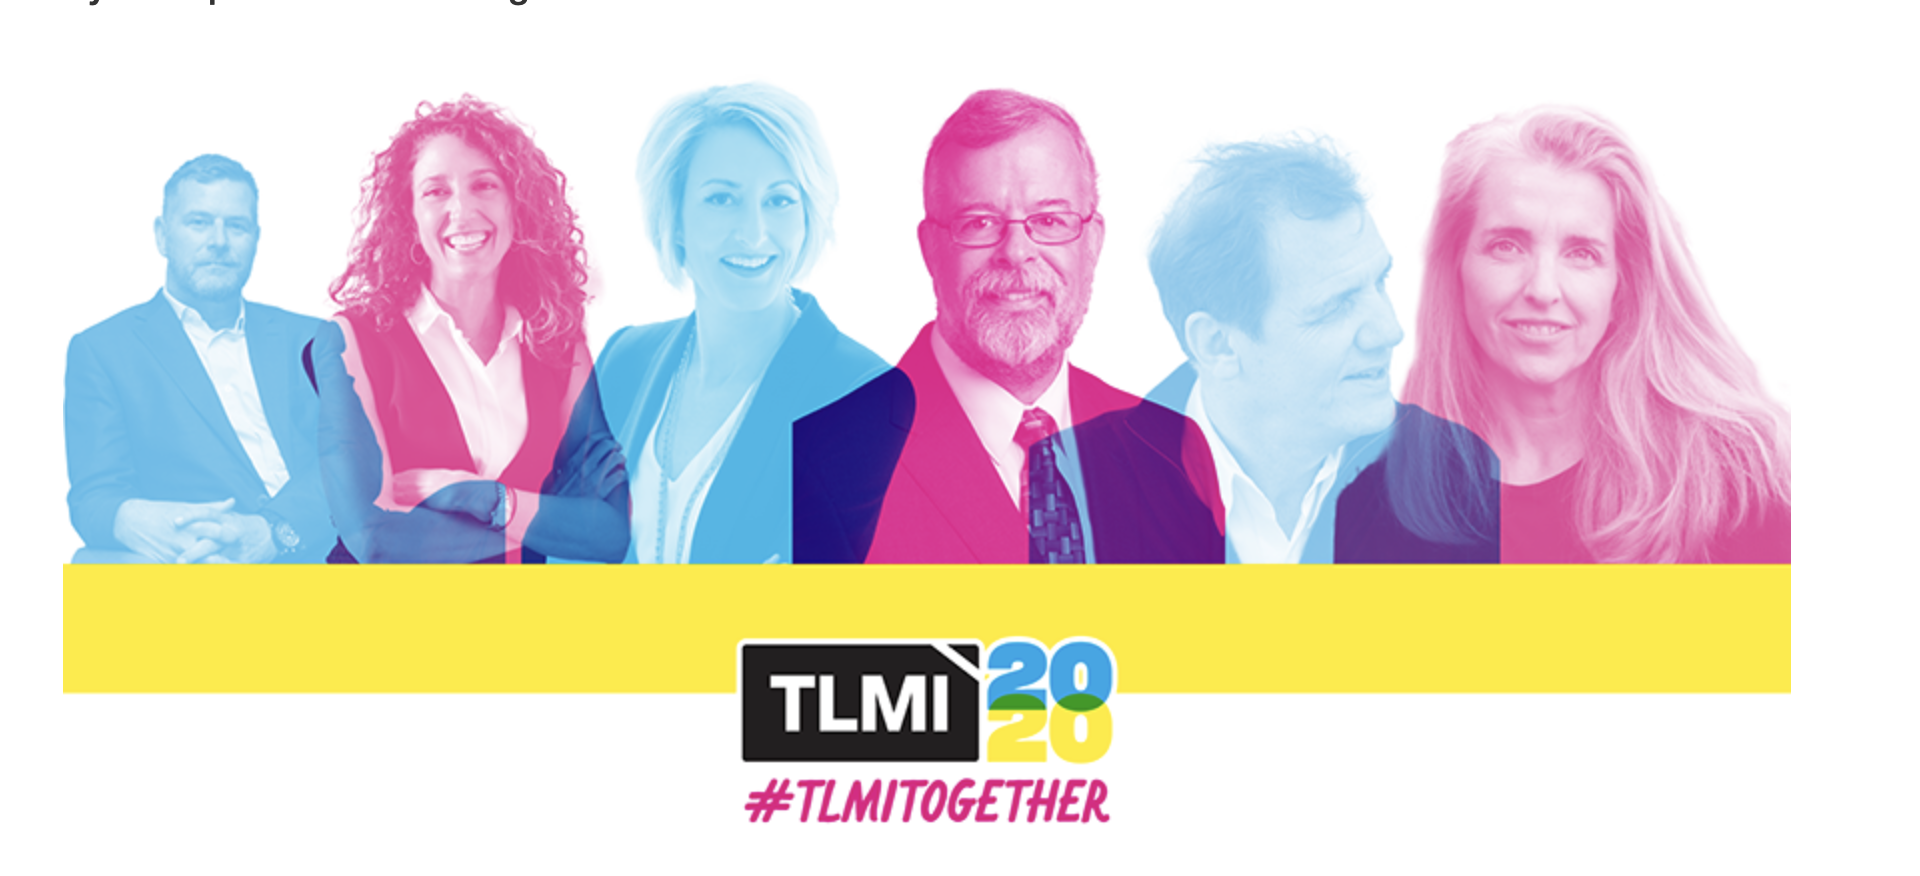 TLMI details Virtual Annual Meeting